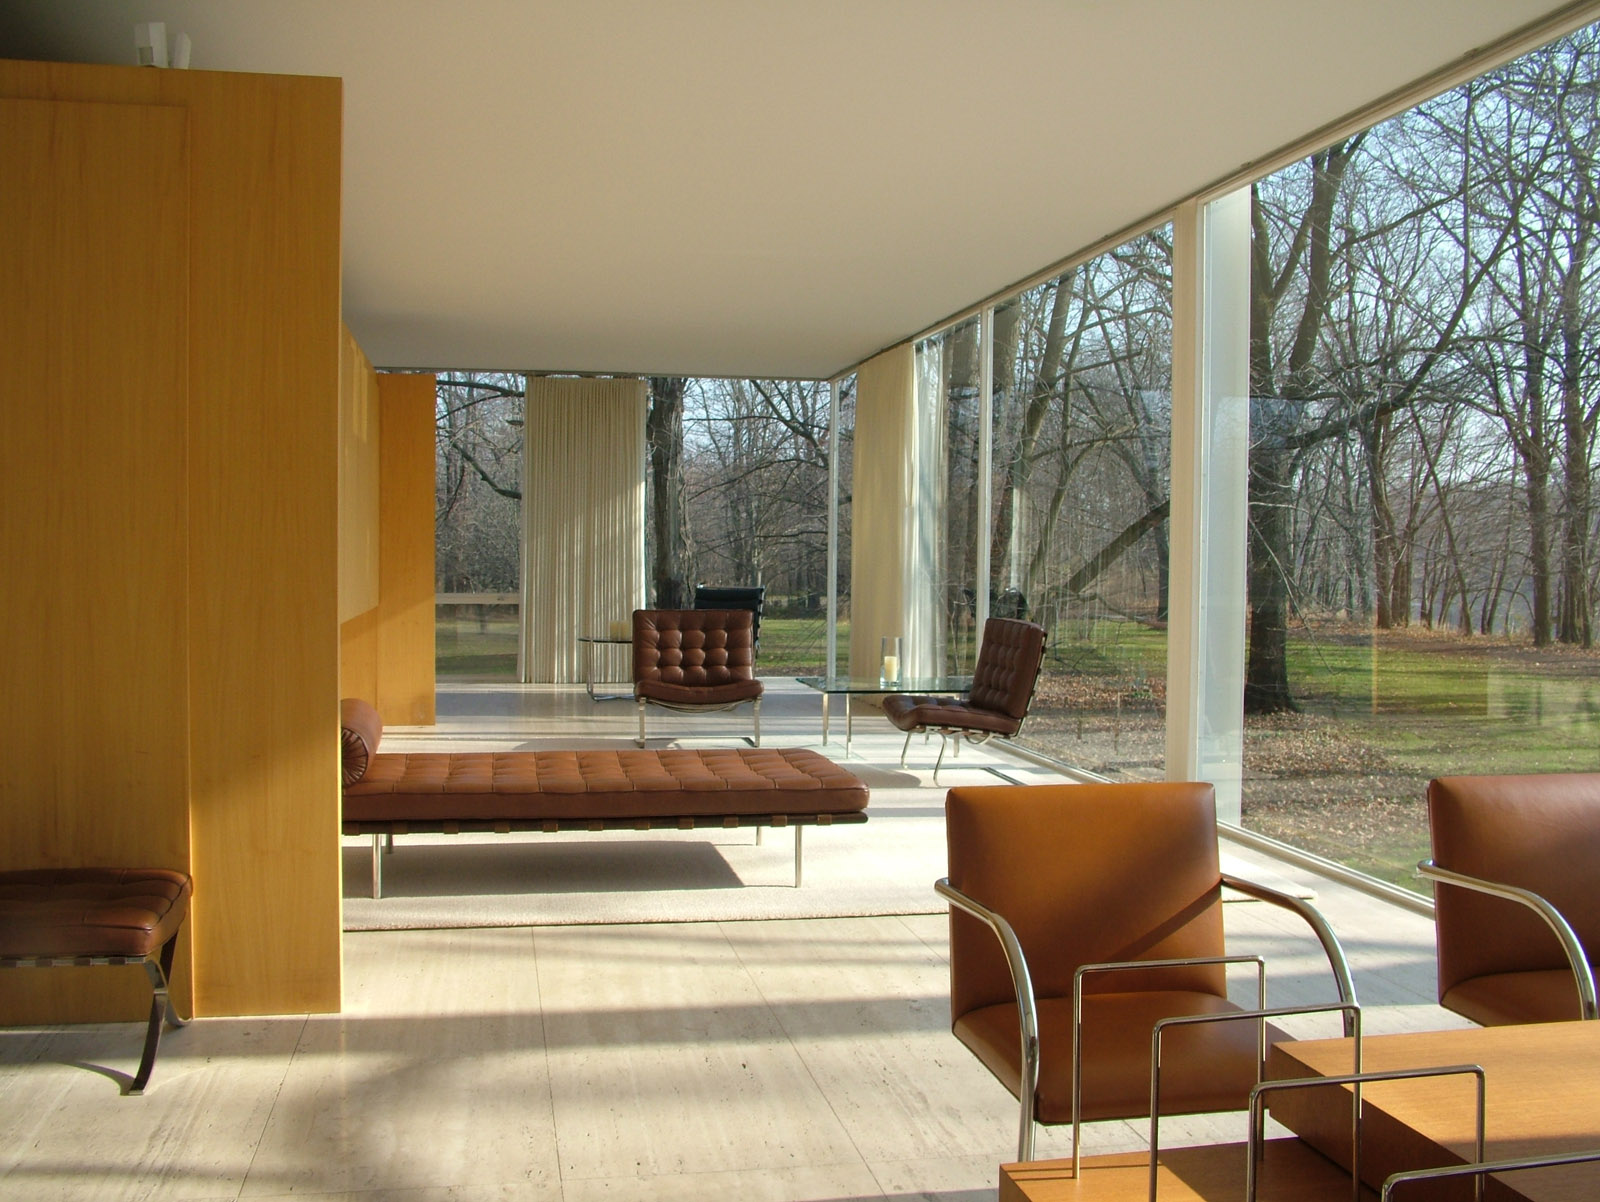 philobiodesign mies van der rohe farnsworth house. Black Bedroom Furniture Sets. Home Design Ideas